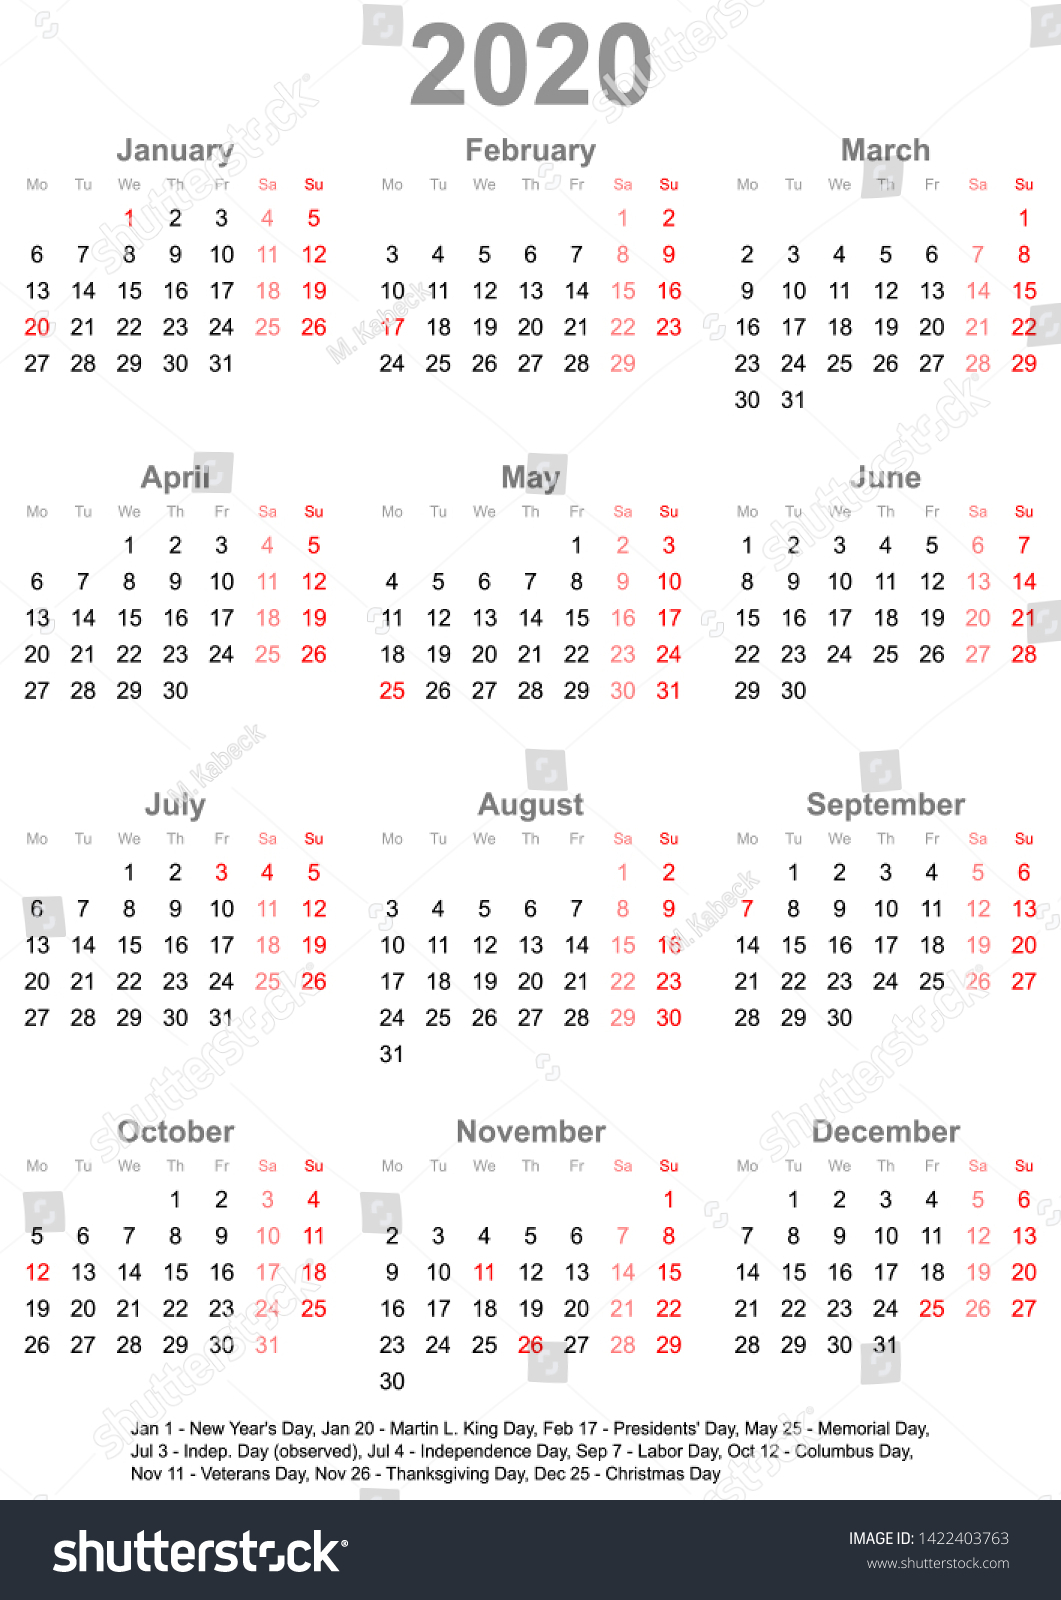 Simple Calendar 2020 One Year Glance | Royalty-Free Stock Image